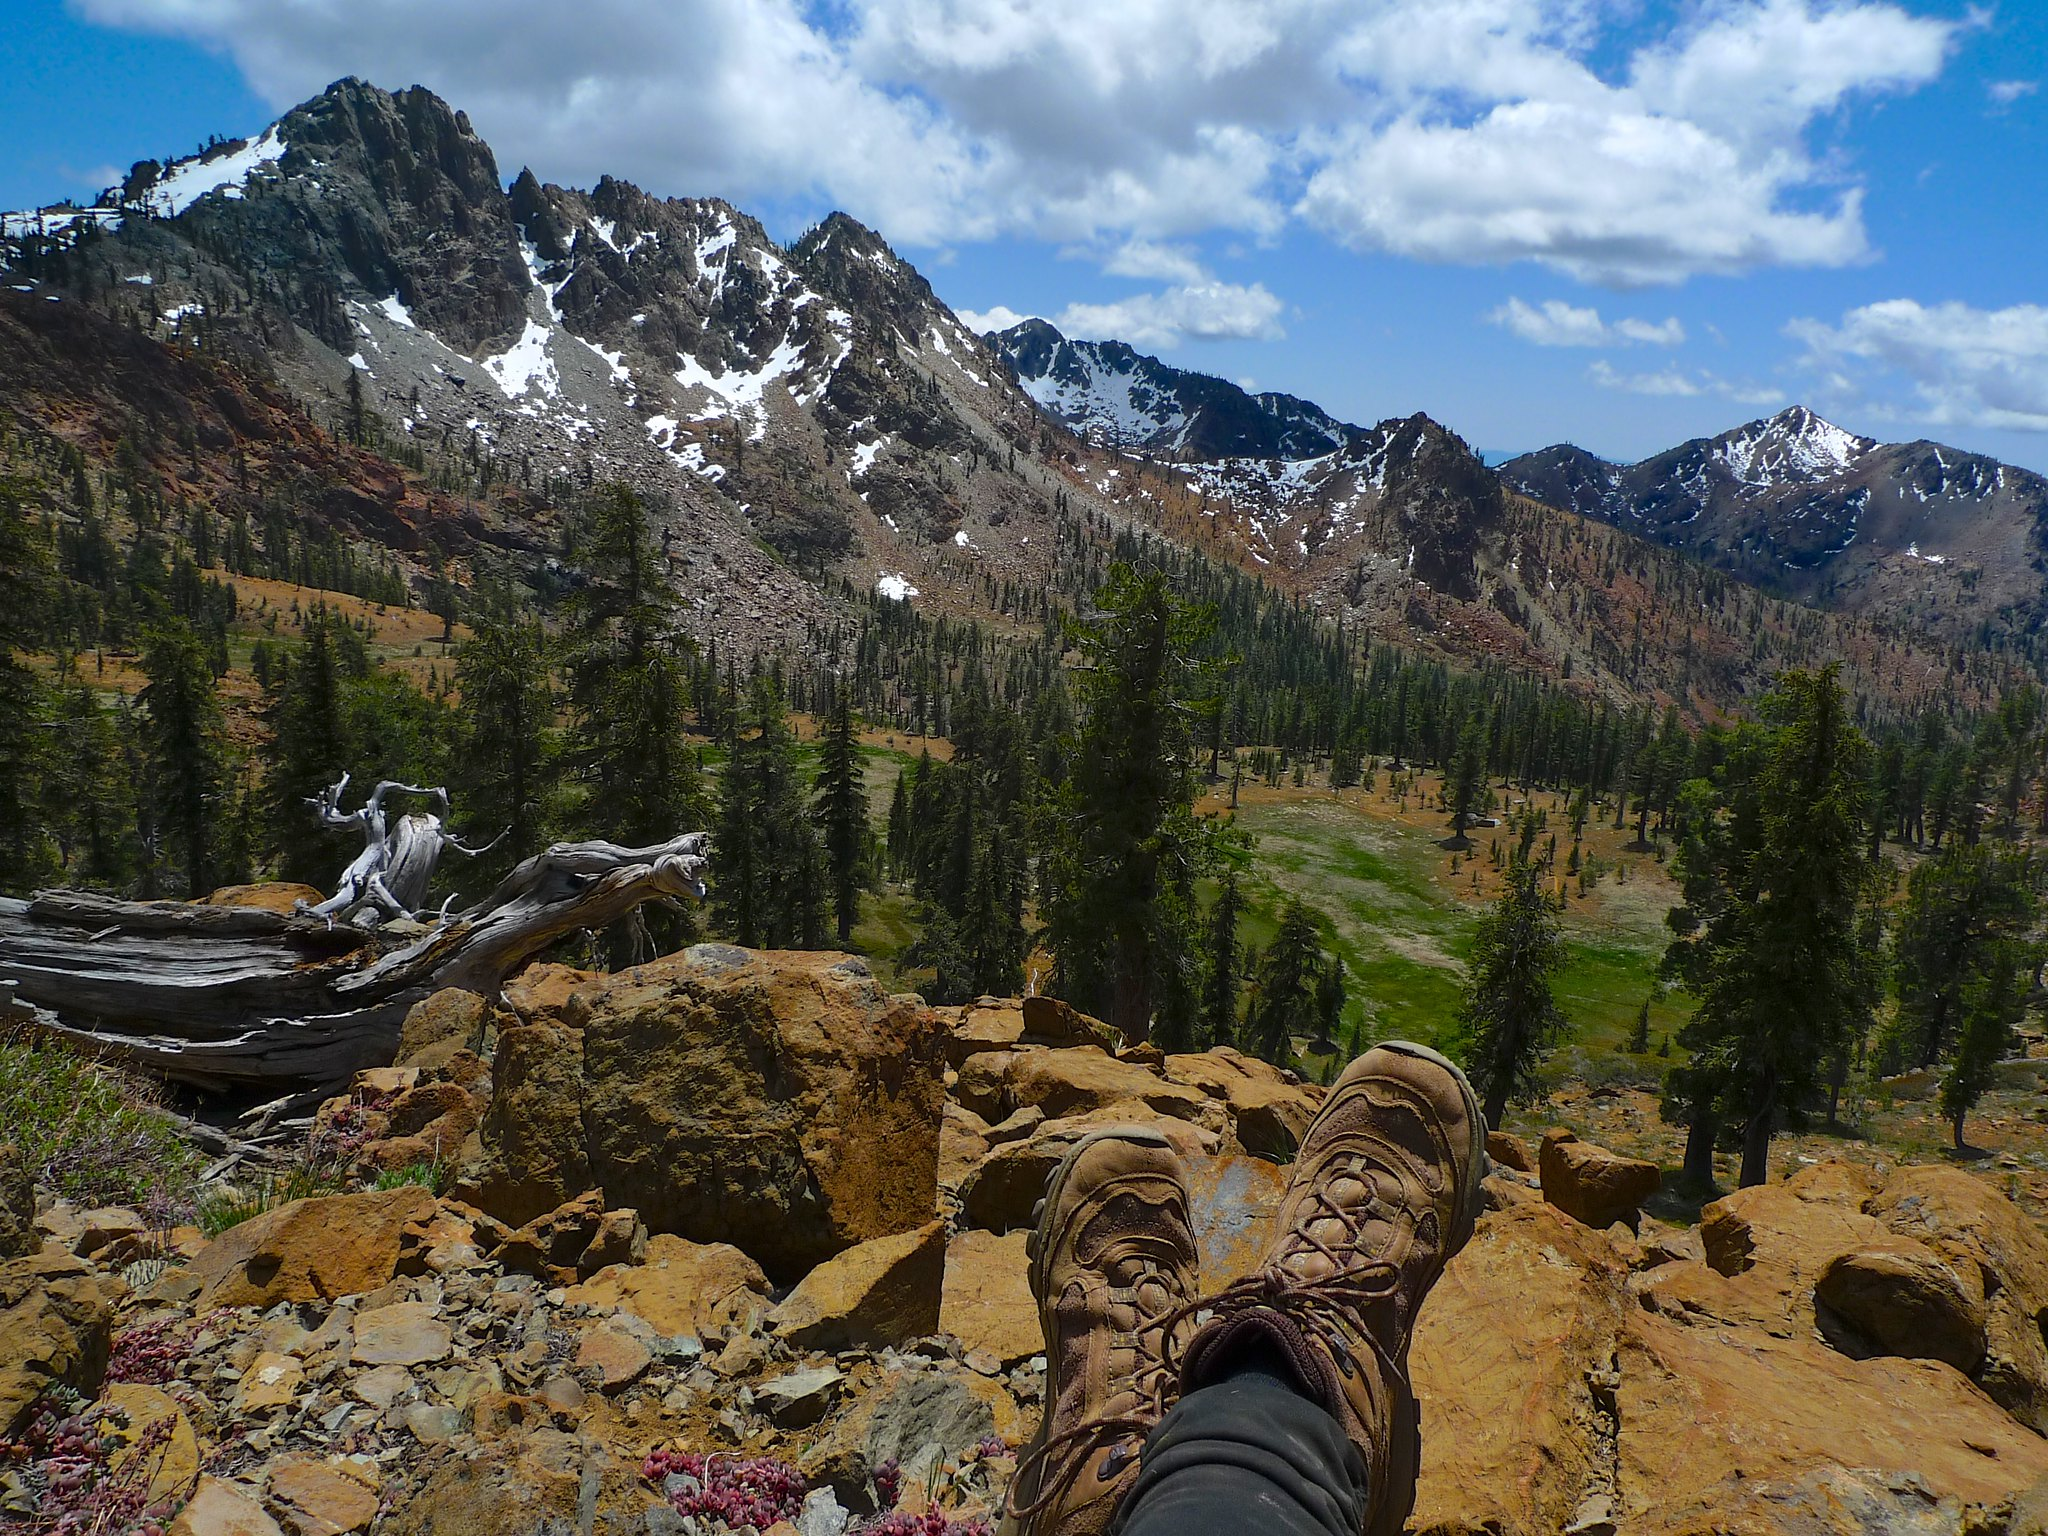 Unnamed peaks, Upper Siligo Meadow, and my feetsies.